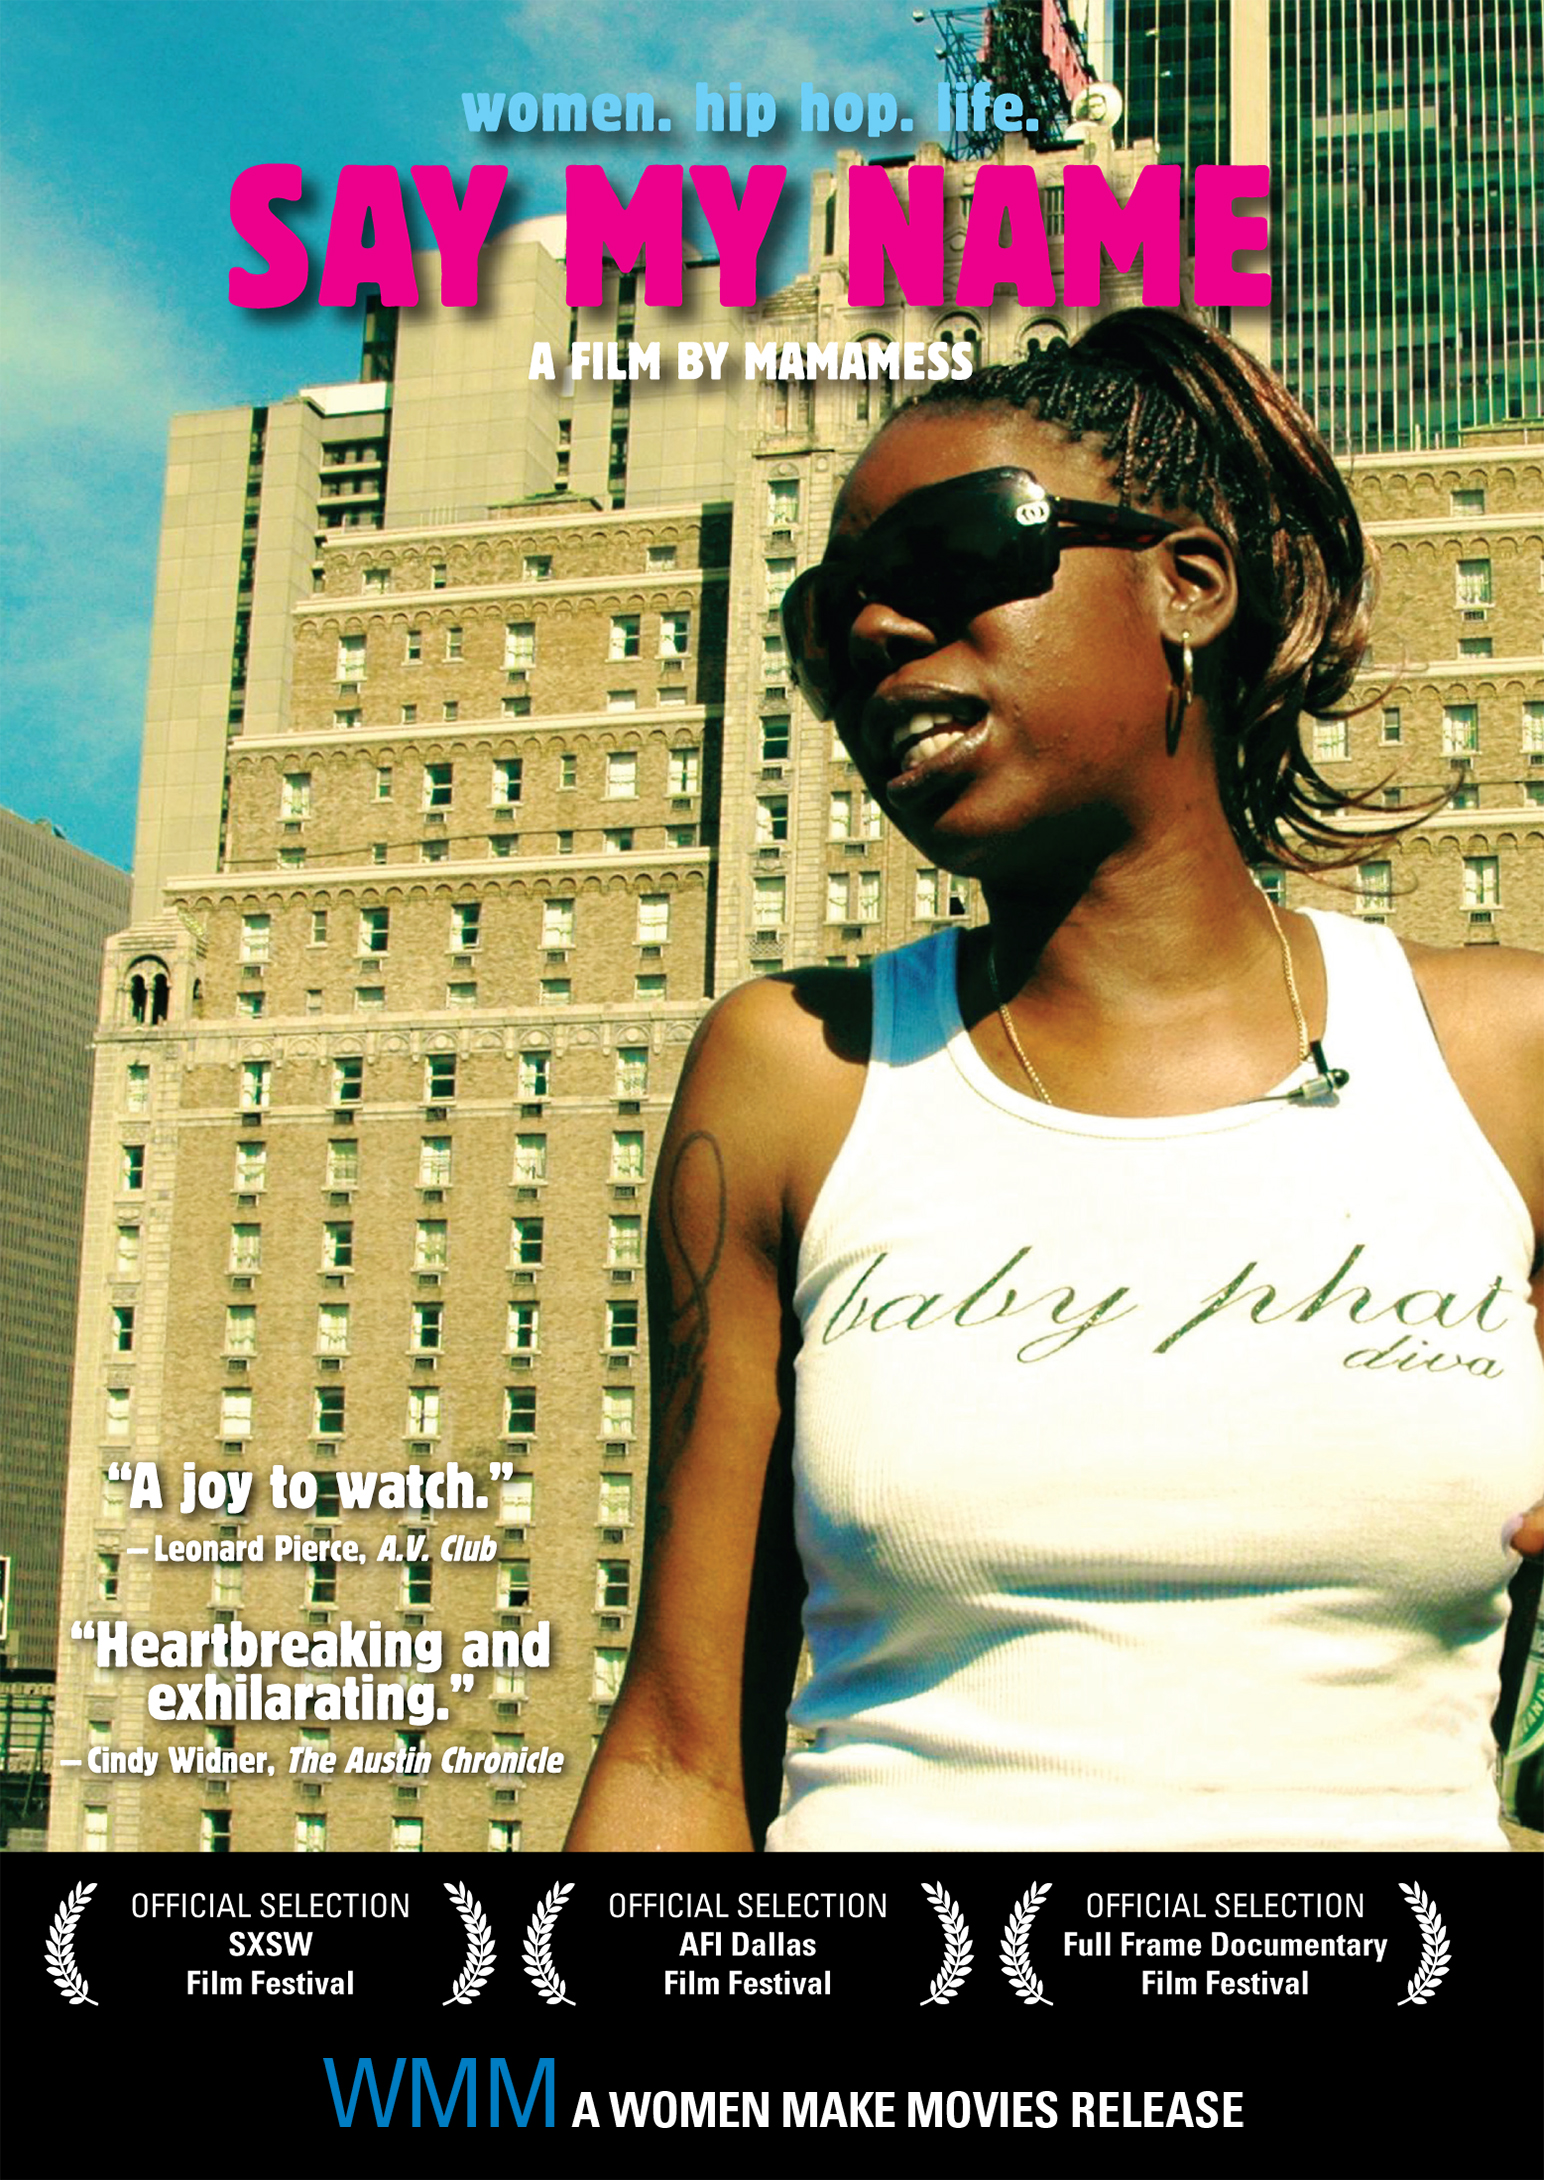 Film poster featuring a Black woman in sunglasses and a white tank top standing in an urban setting